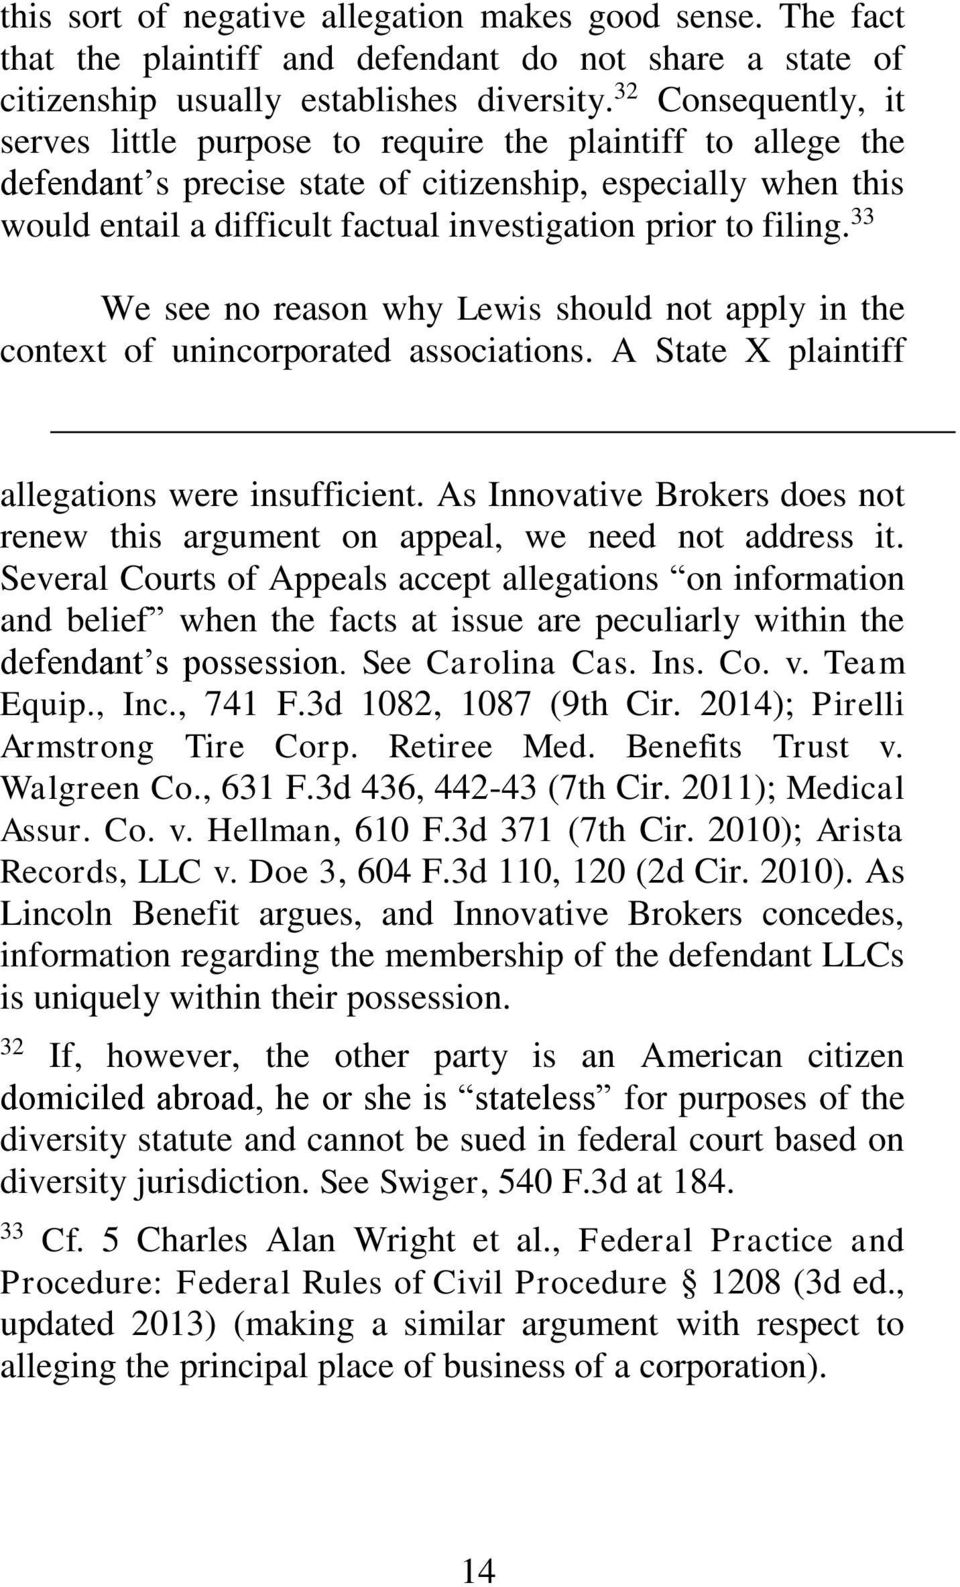 filing. 33 We see no reason why Lewis should not apply in the context of unincorporated associations. A State X plaintiff allegations were insufficient.